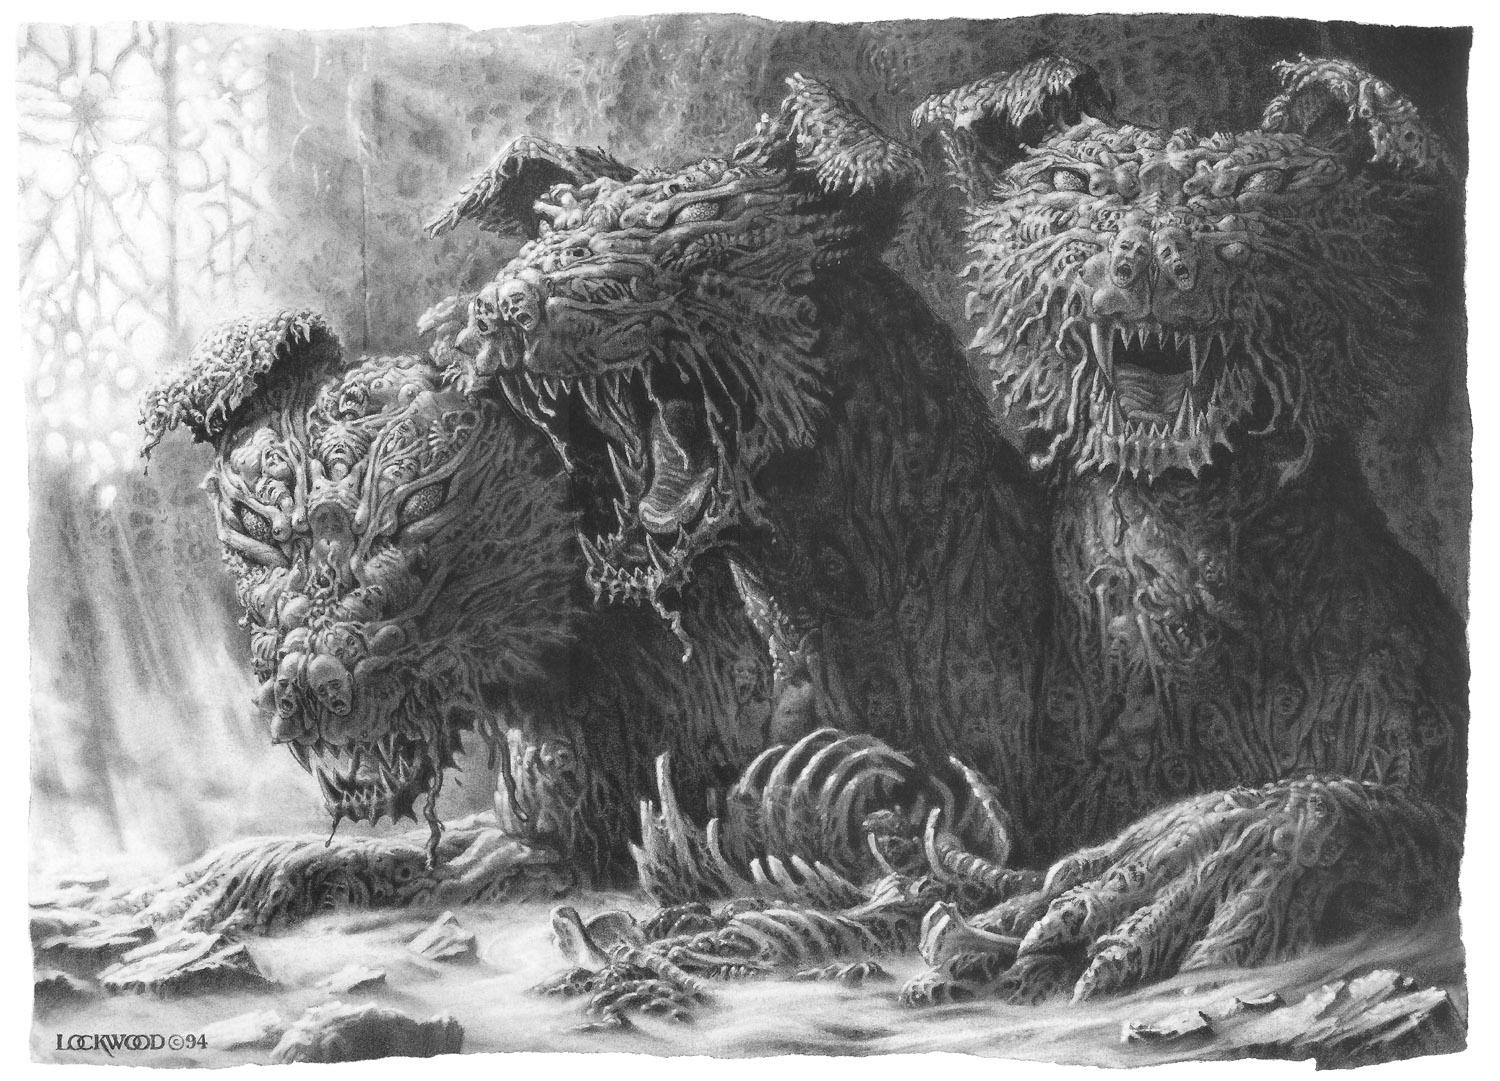 PRIMEVALS: The Monster Incyclopedia: Hellhounds/Black Demon Dogs